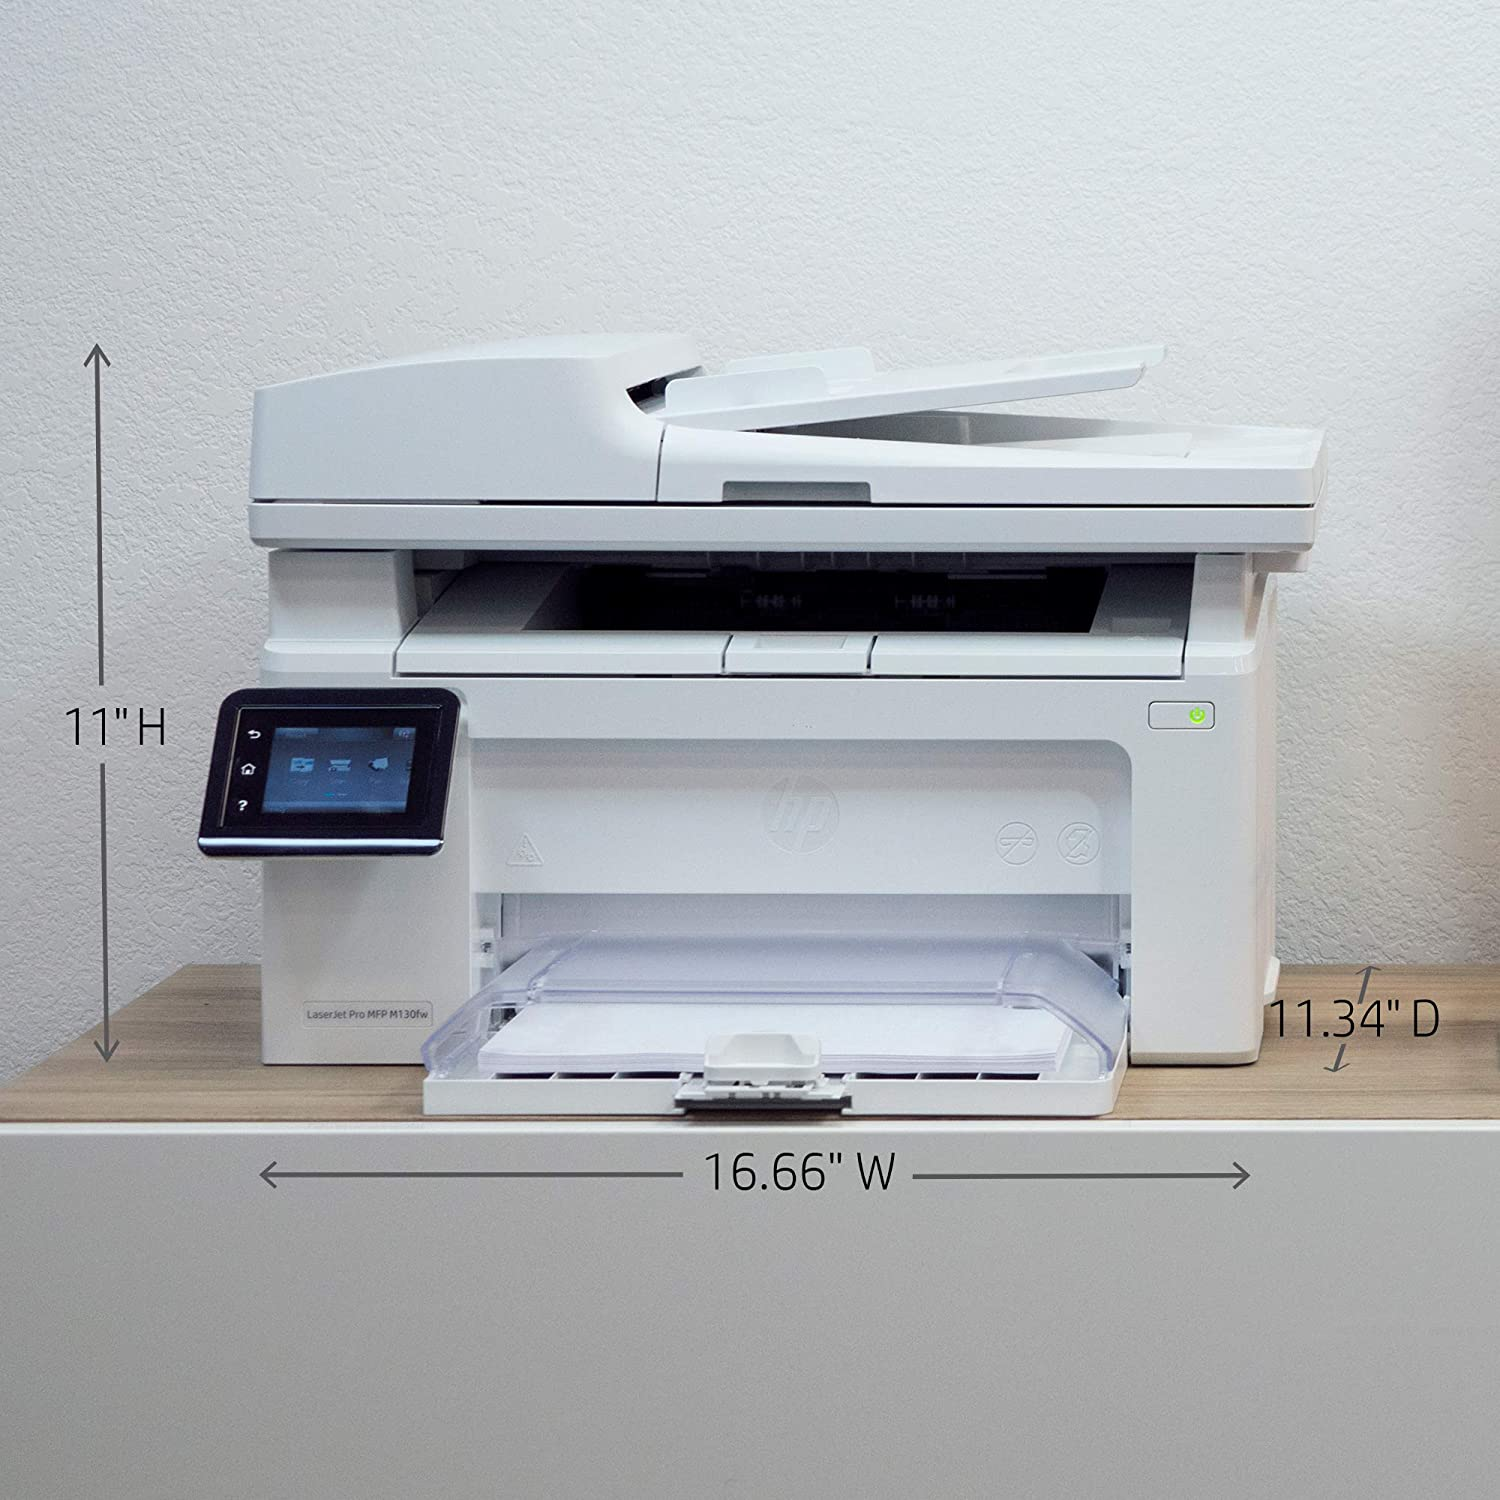 HP LaserJet Pro M130fw All-in-One Wireless Laser Printer (G3Q60A), Replaces  M127fw